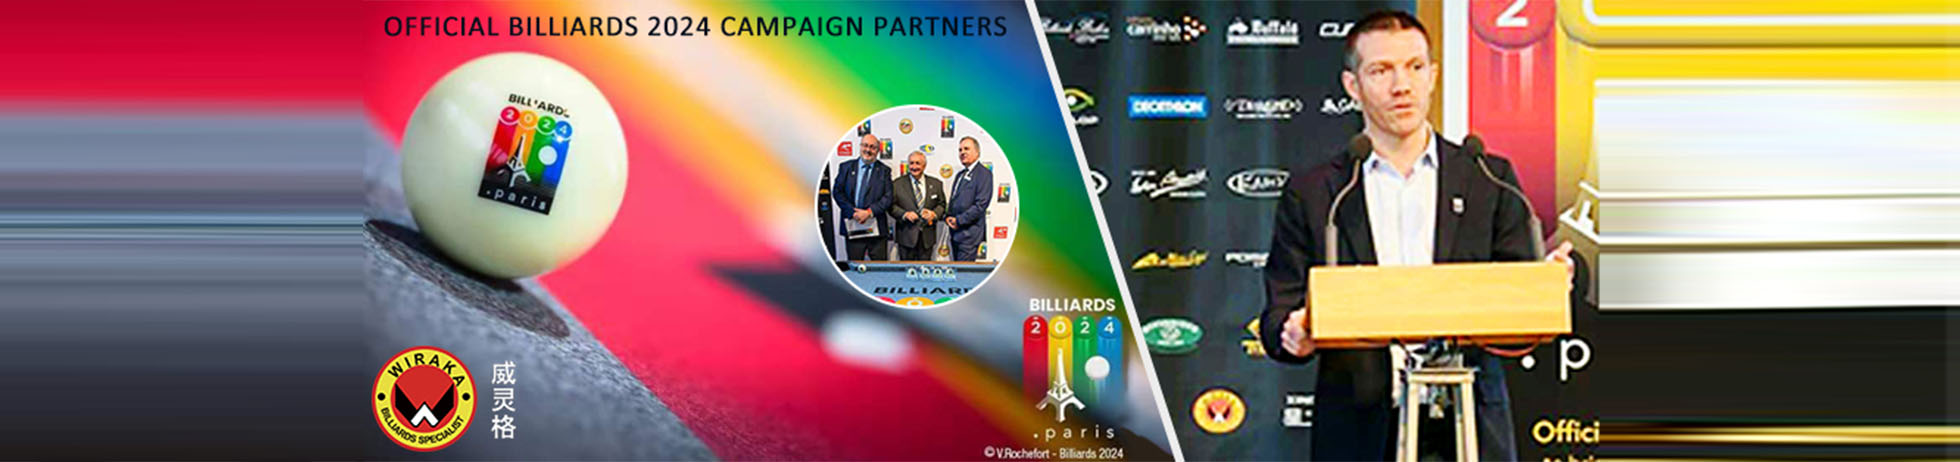 official-billiards-2024-campaign-partners